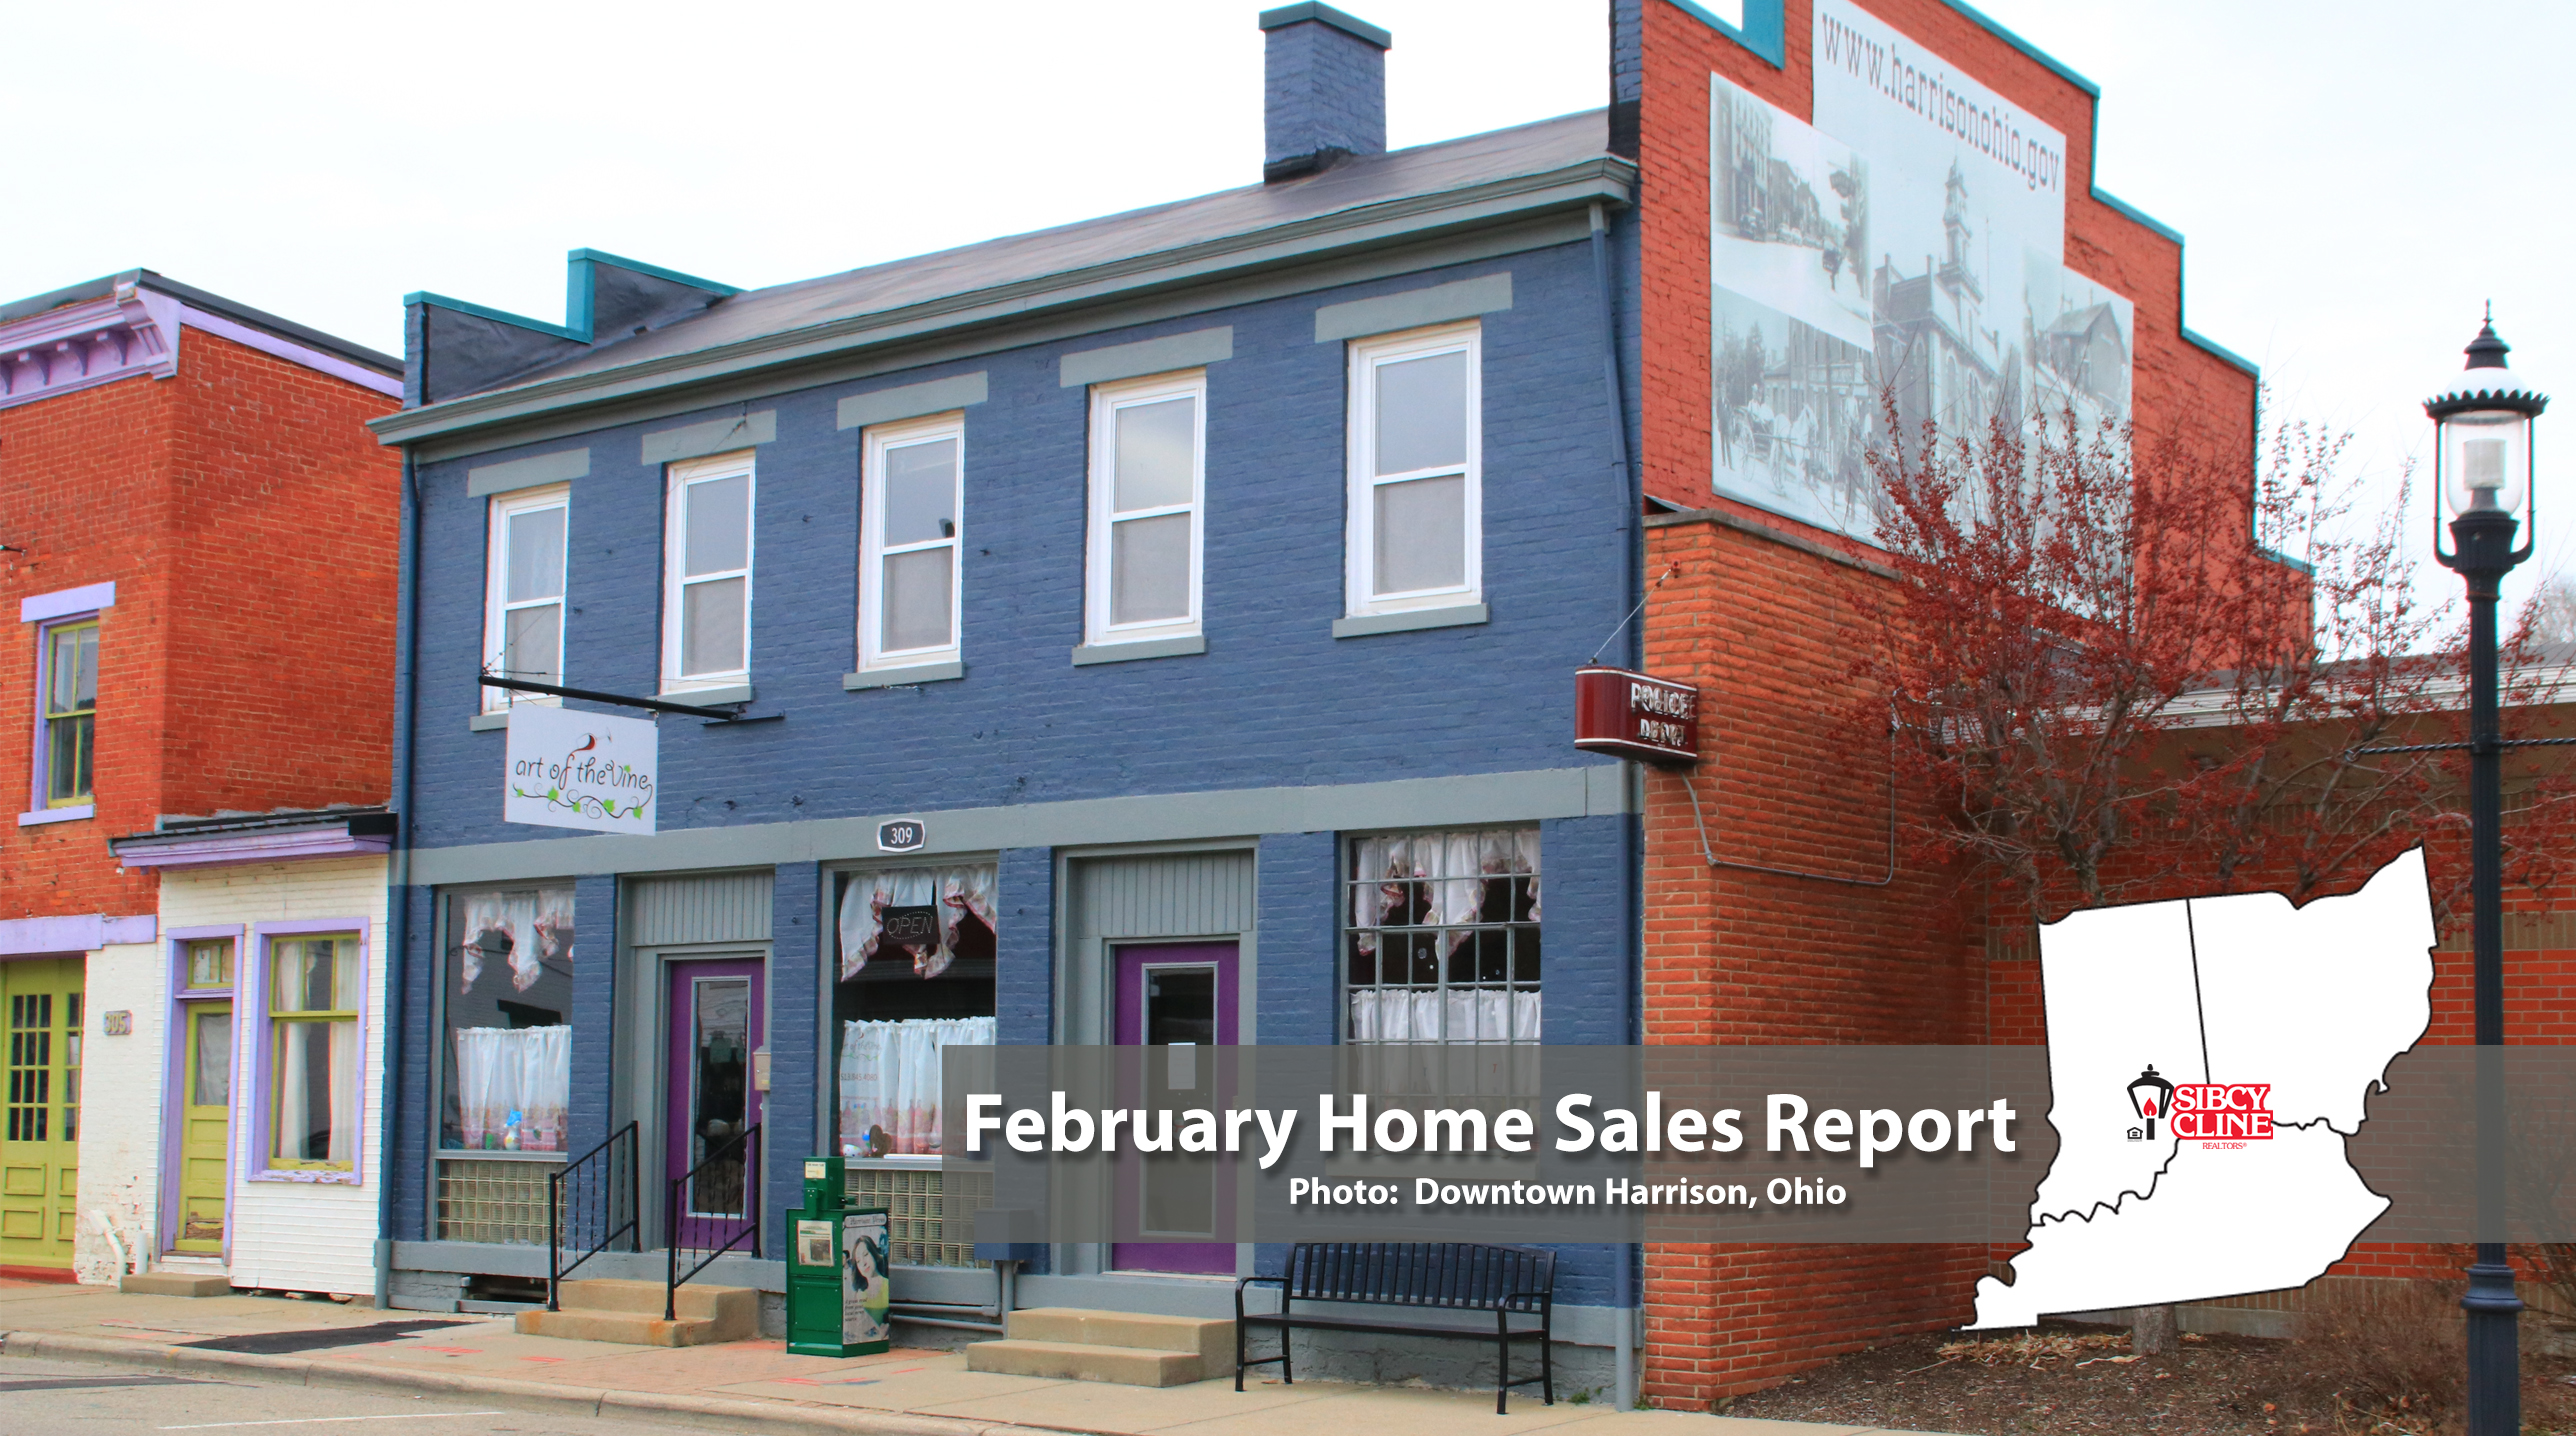 Marvelous February 2019 Home Sales Report For Cincinnati And Dayton Interior Design Ideas Clesiryabchikinfo